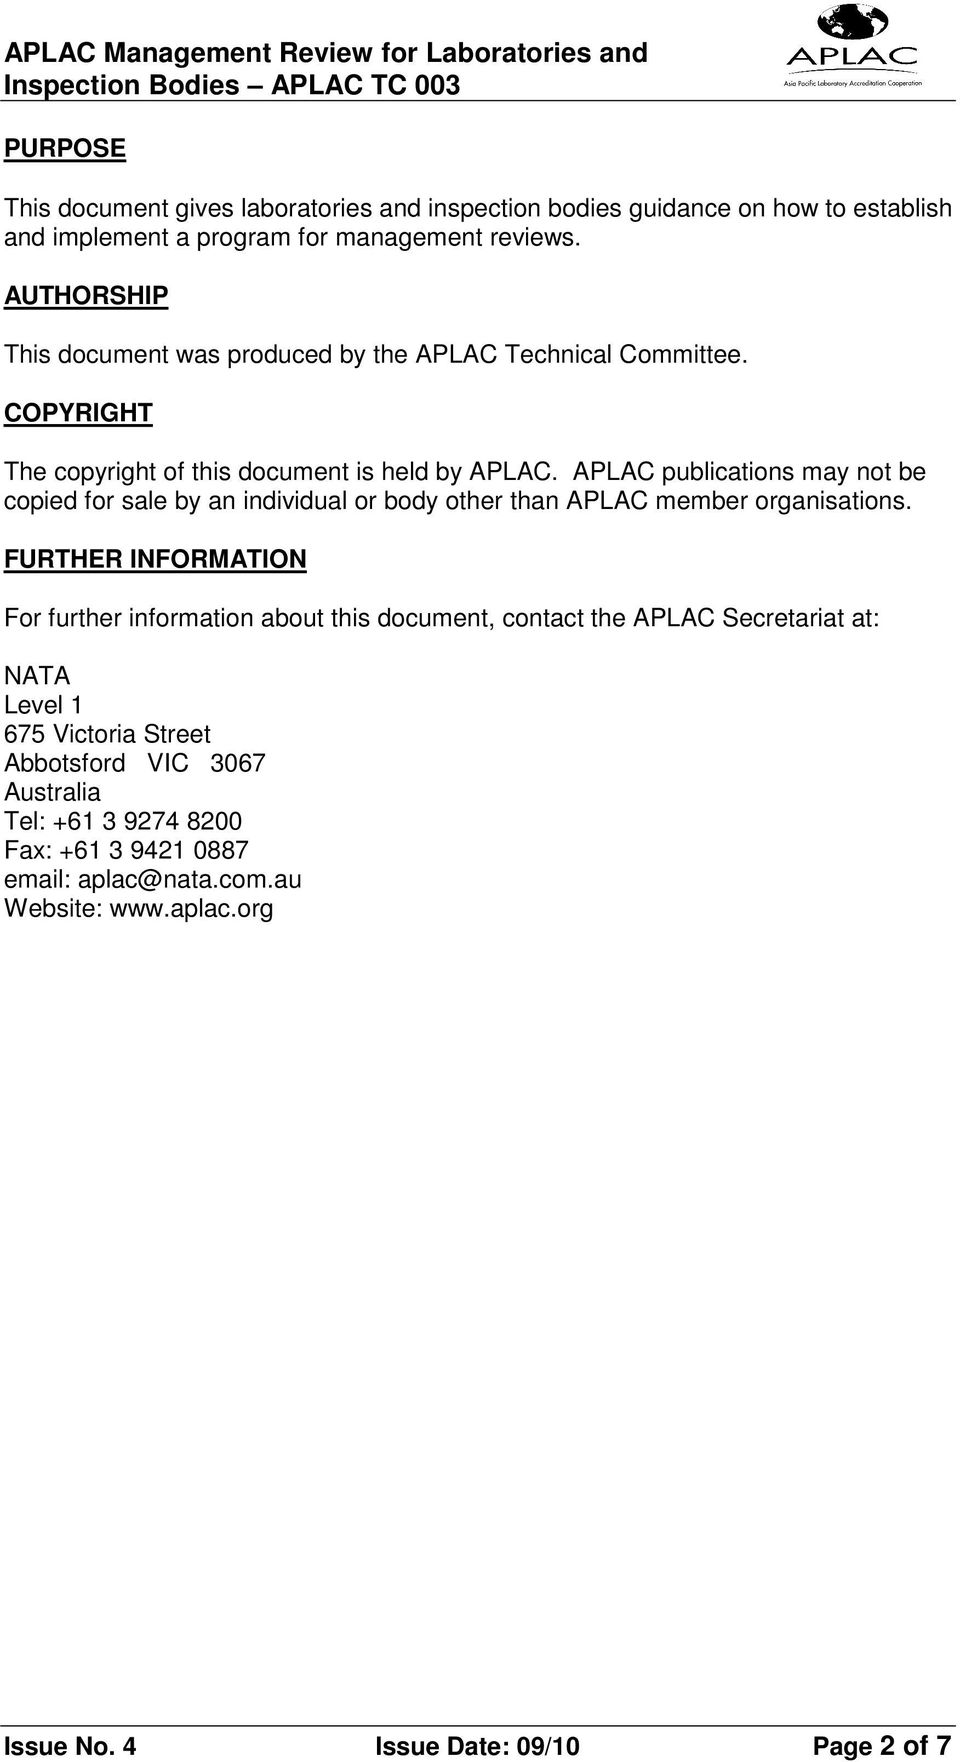 APLAC publications may not be copied for sale by an individual or body other than APLAC member organisations.